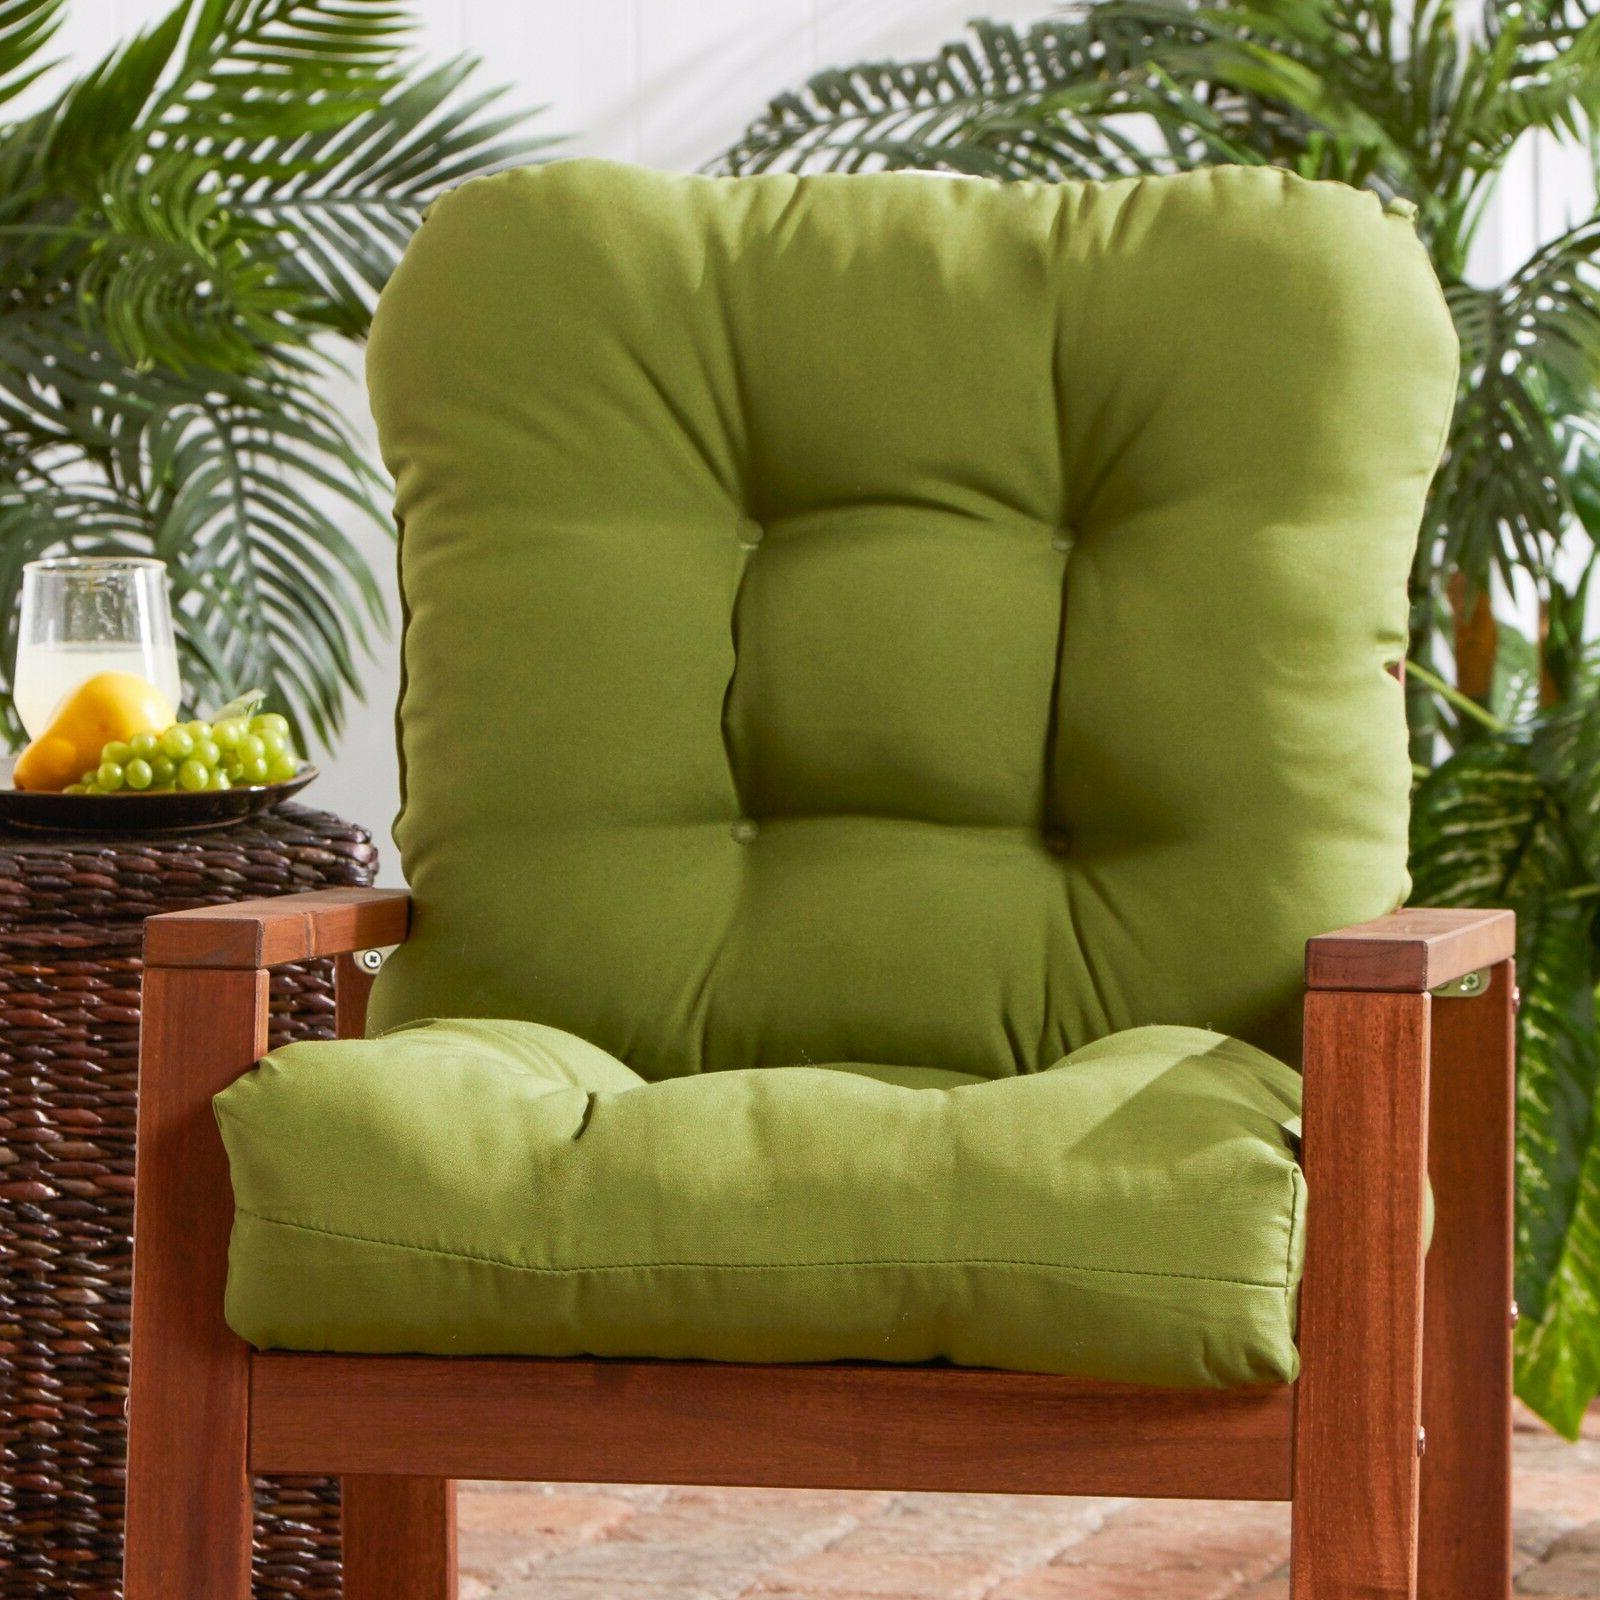 "Chair Cushion High Outdoor 42"" Cushions"